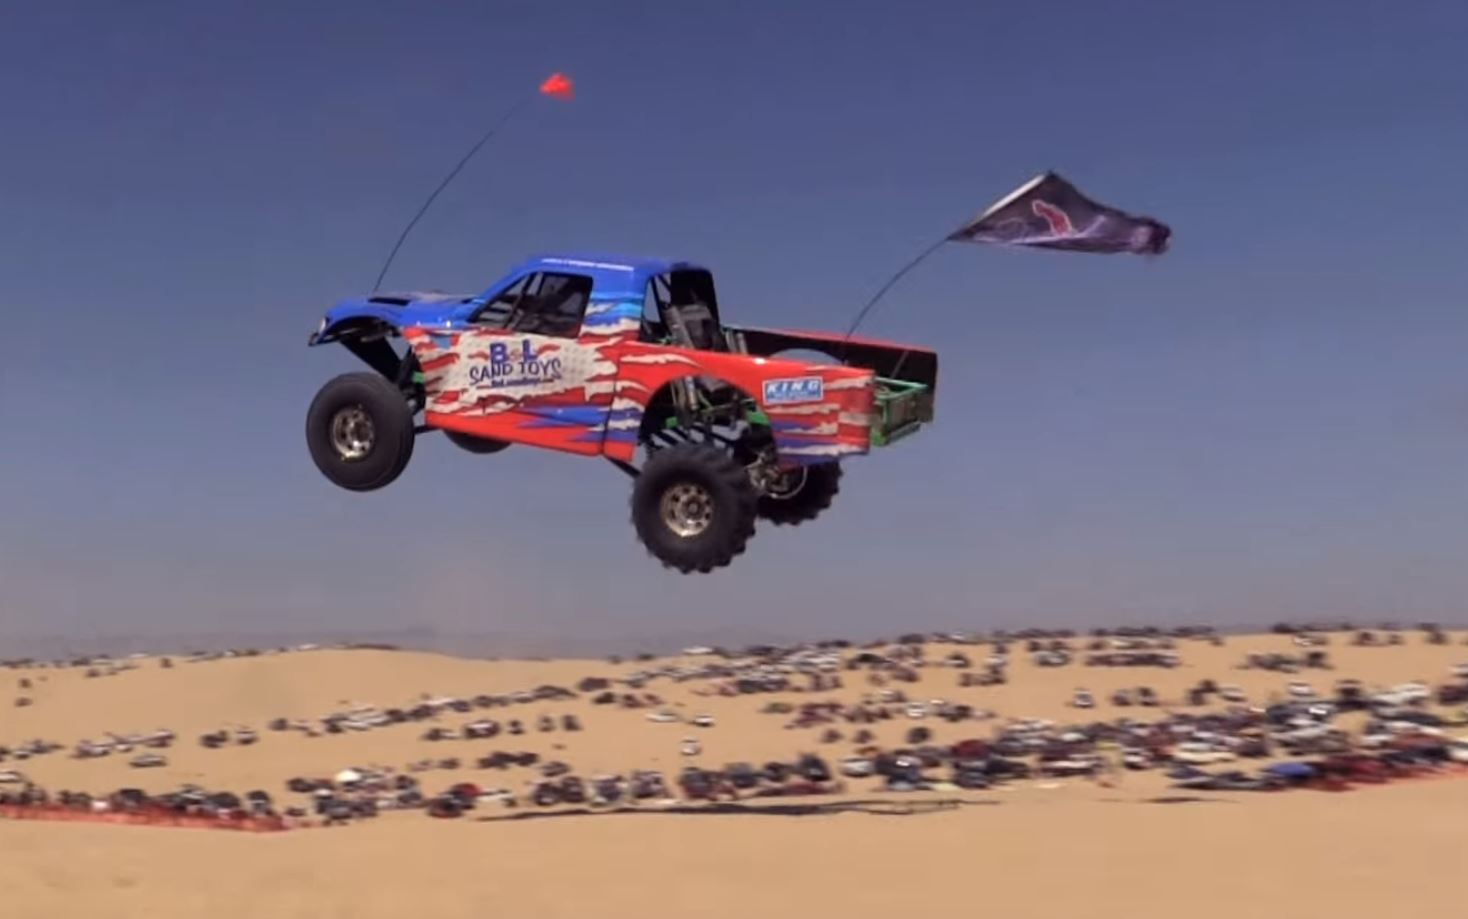 We Love Trucks Jumping Giant Sand Dunes! Watch This 169 Foot Leap At Huckfest In Pismo!